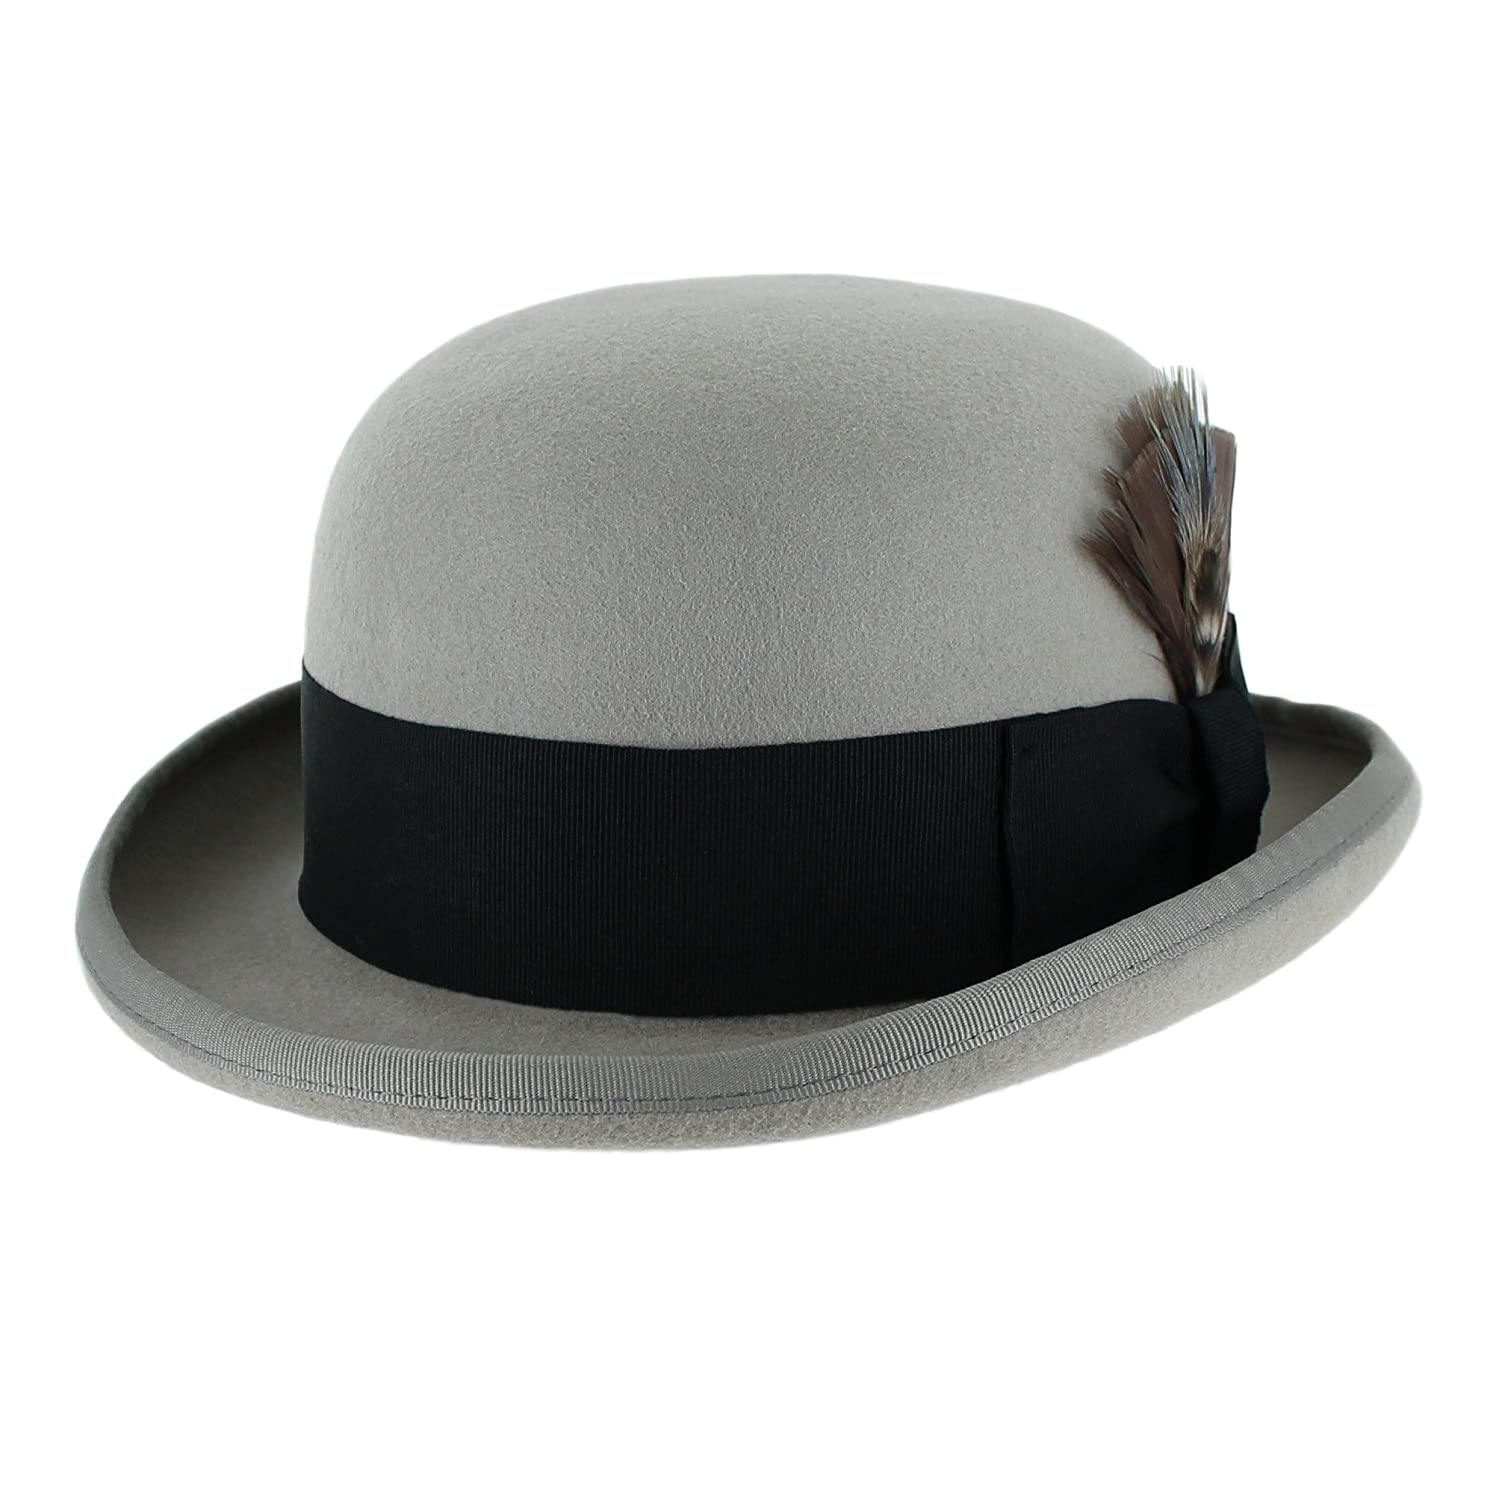 Victorian Men's Hats- Top Hats, Bowler, Gambler Belfry Bowler Derby 100% Pure Wool Theater Quality Hat in Black Brown Grey Navy Pearl Green $39.95 AT vintagedancer.com